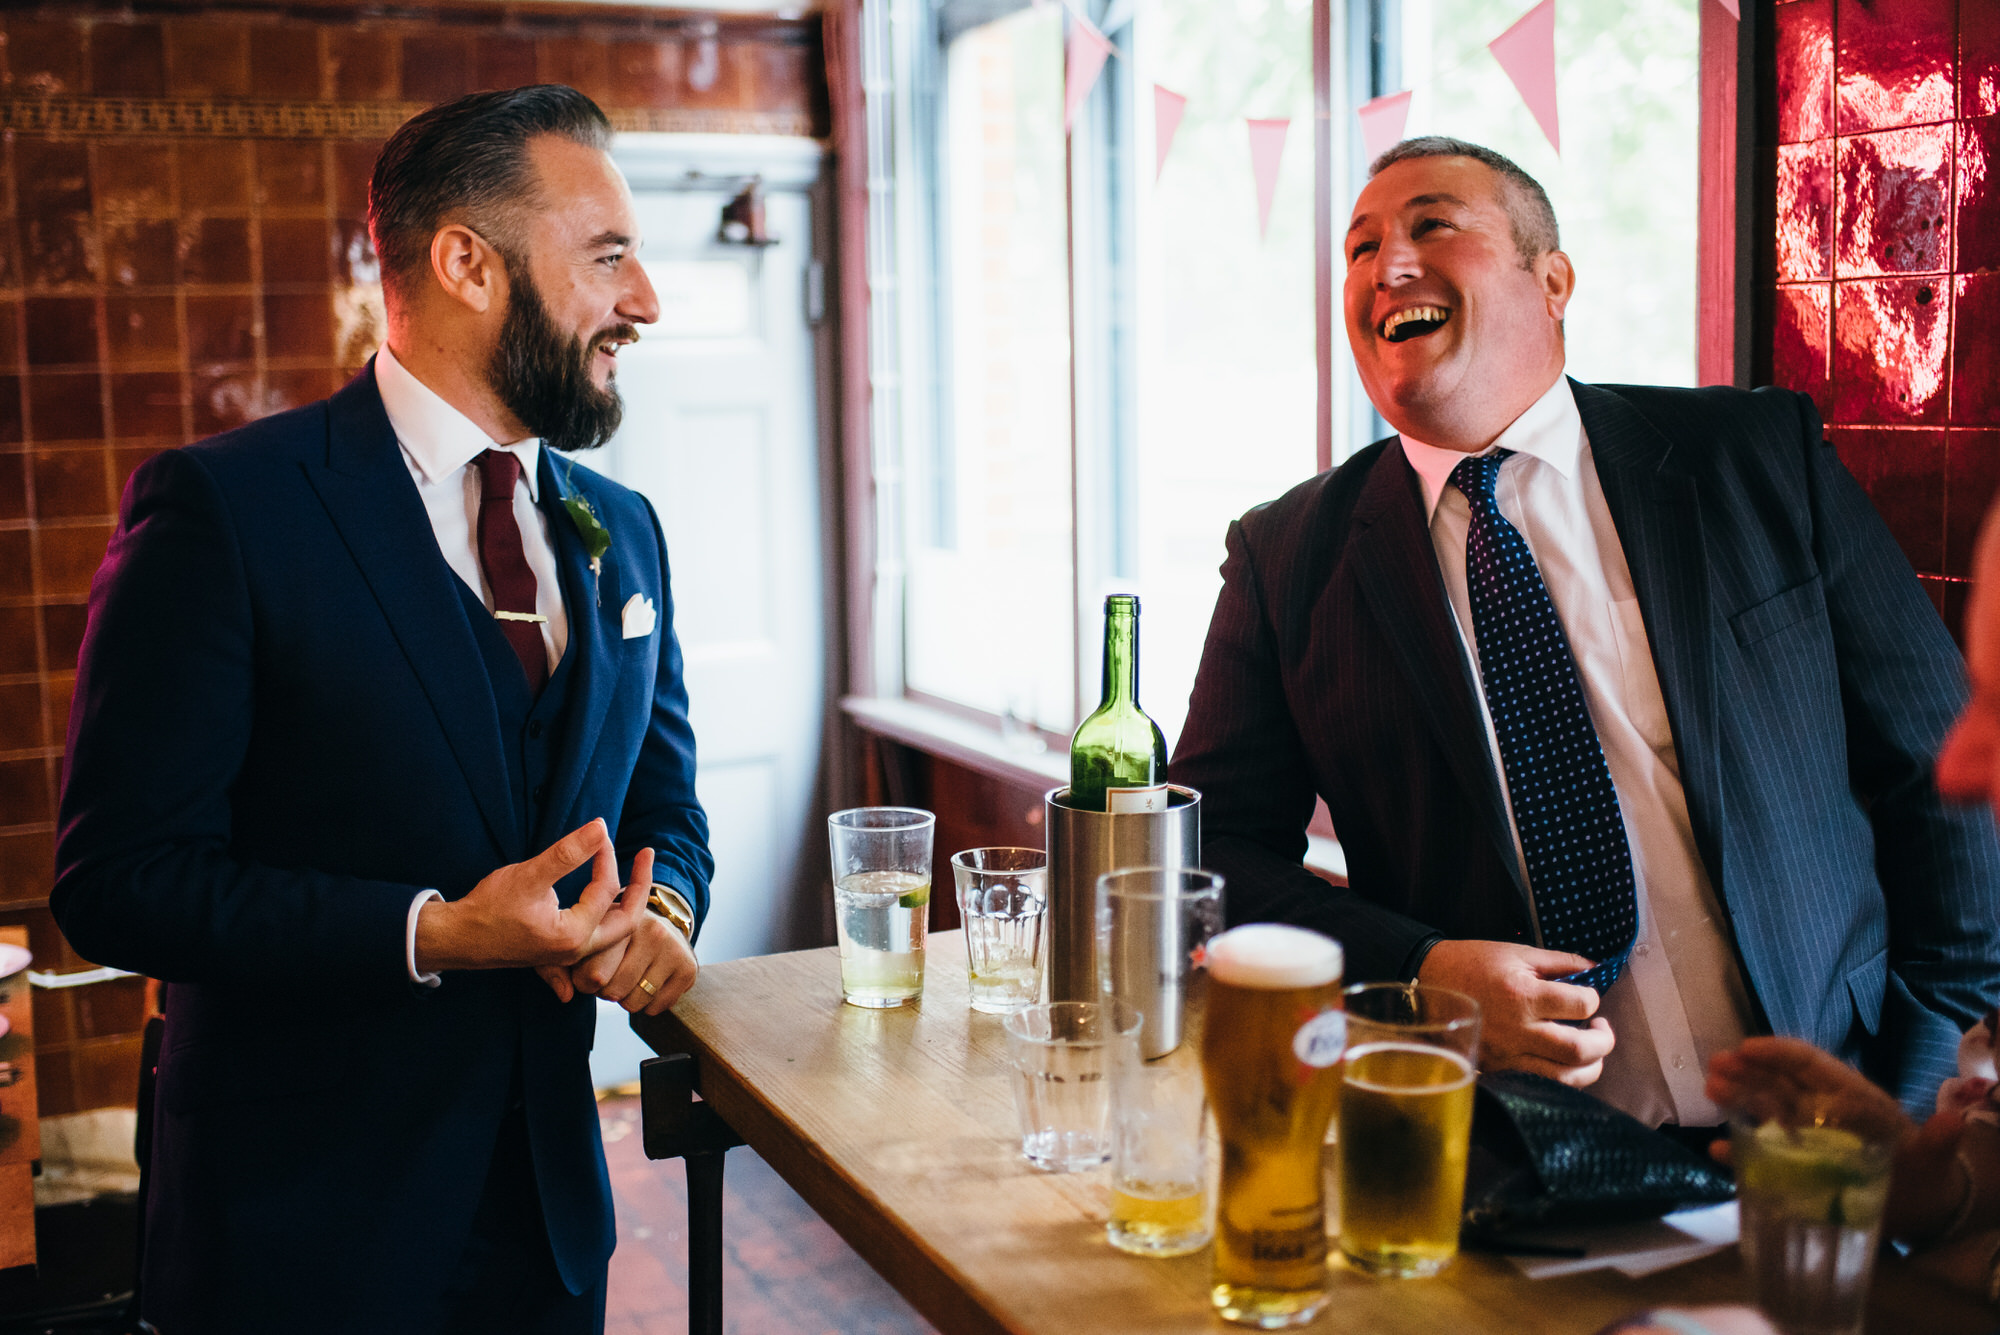 London pub wedding reception